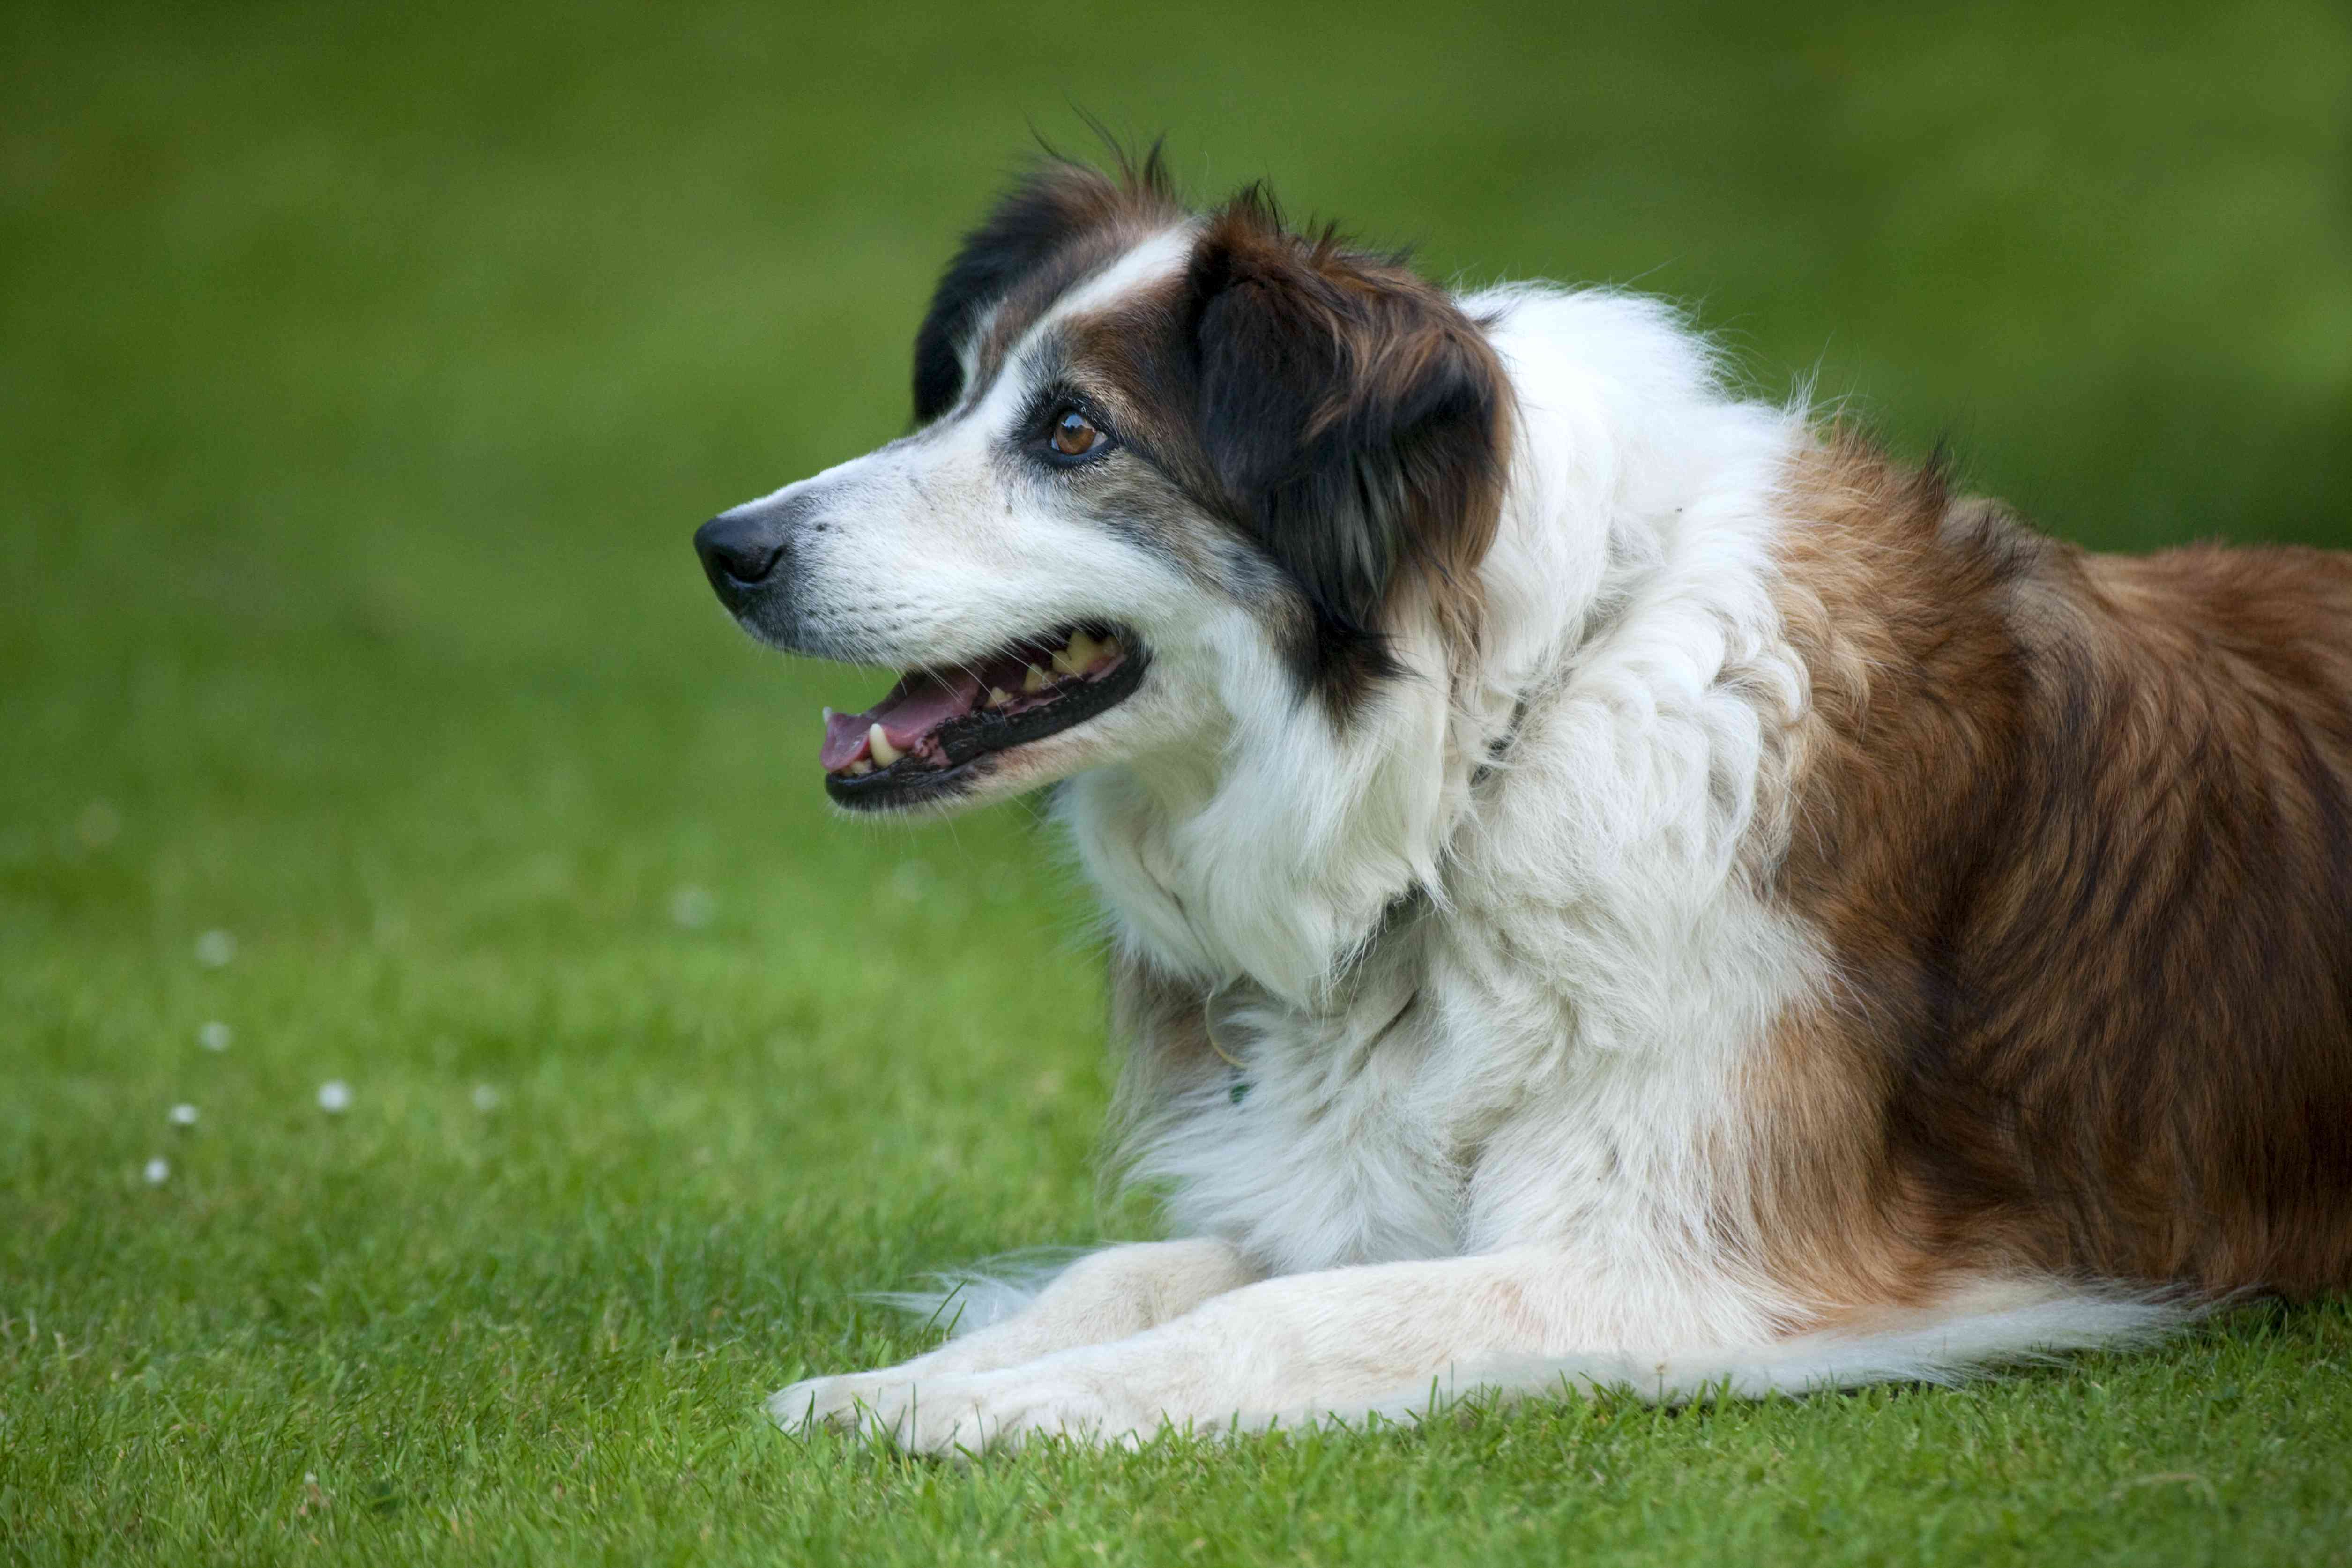 Welsh Border Collie dog lying on grass field